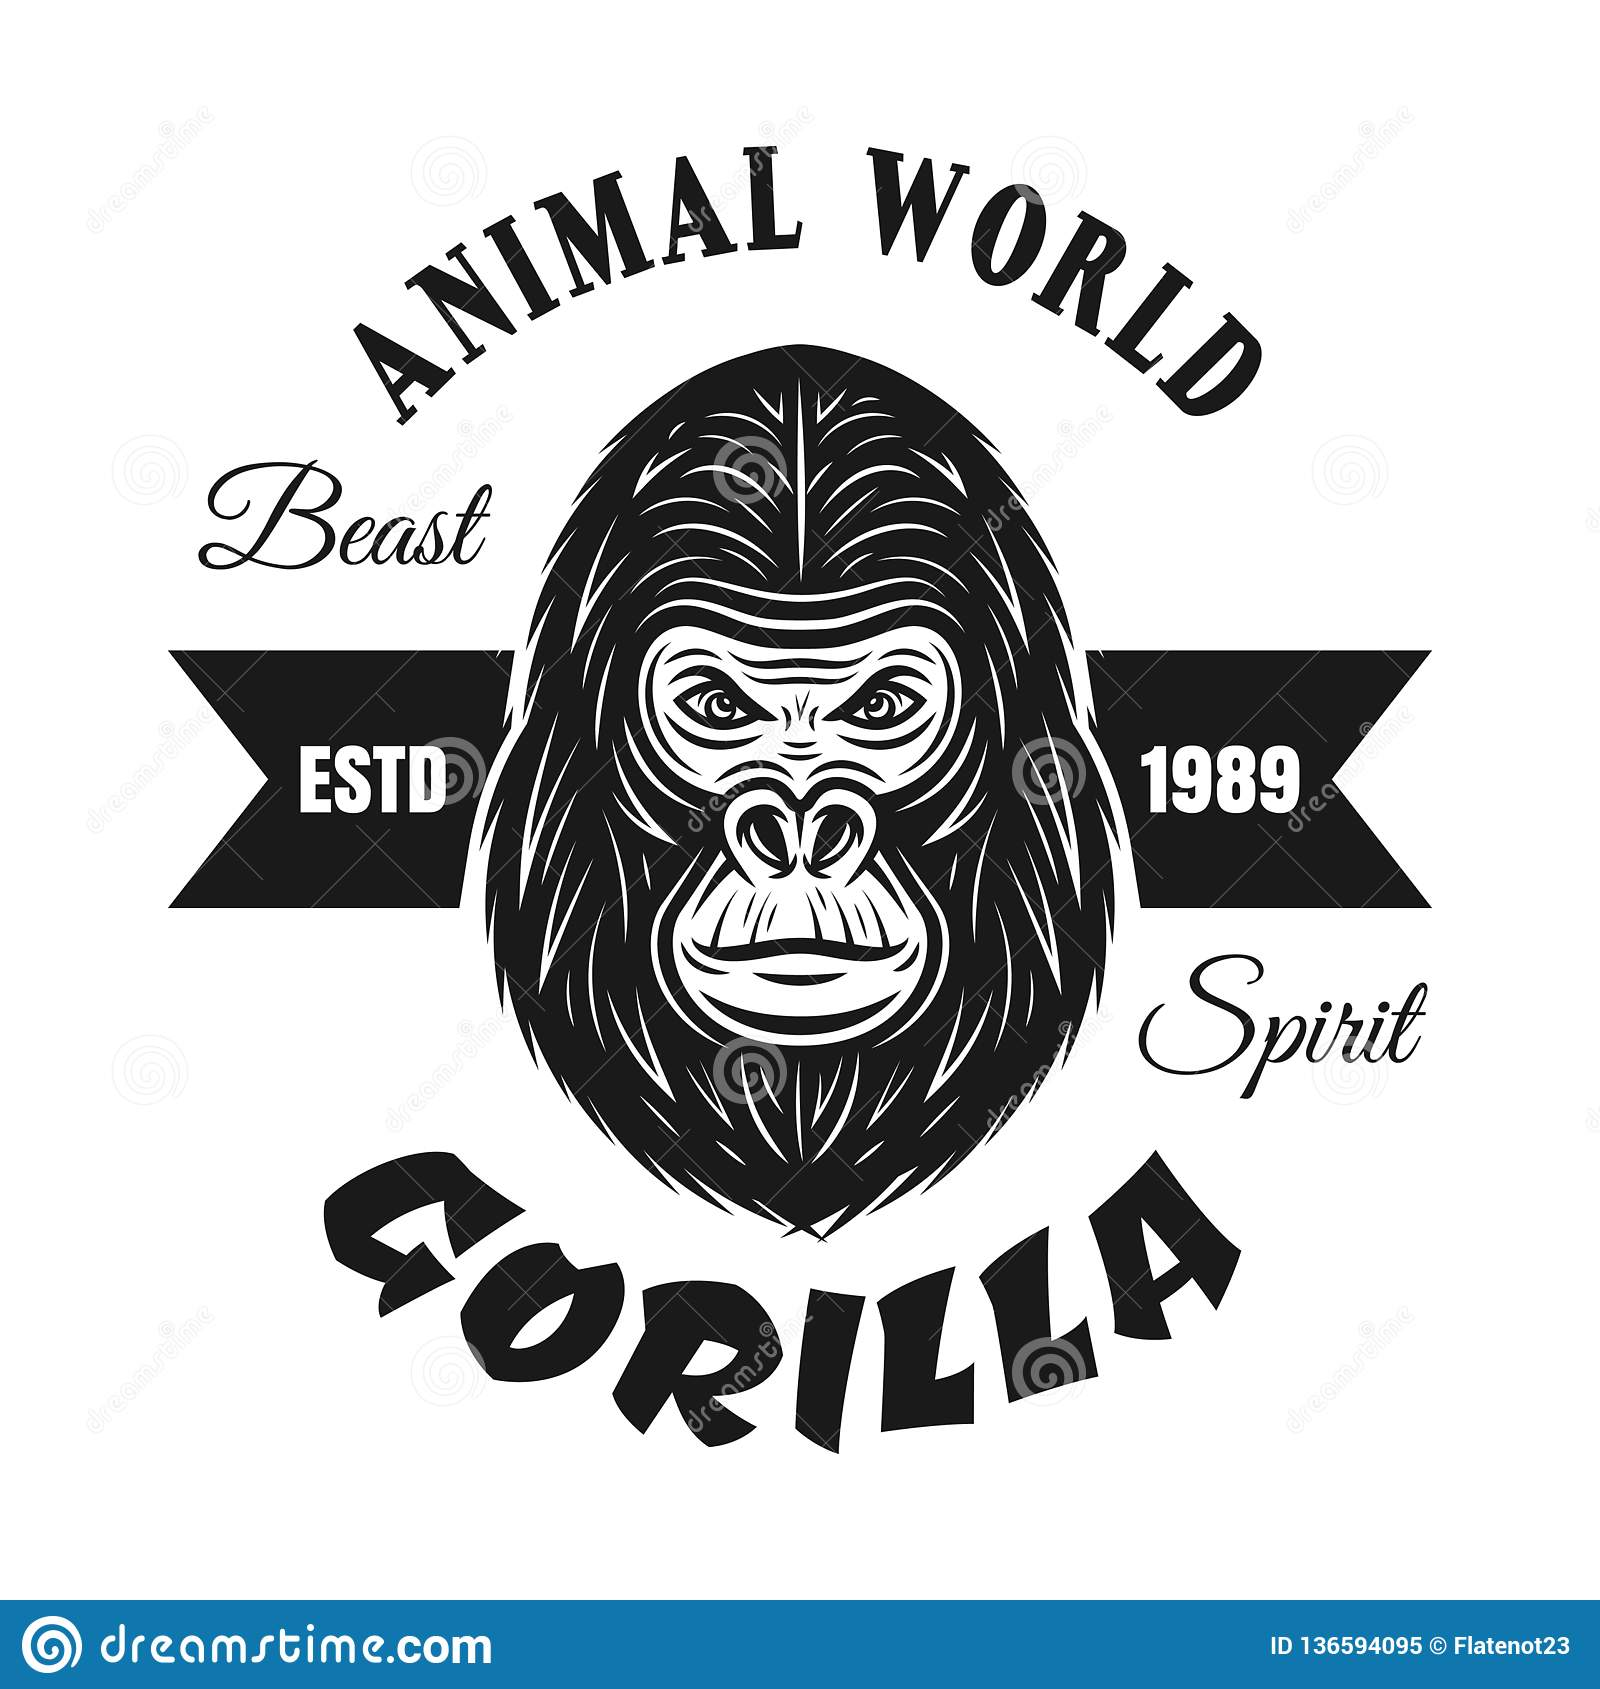 fcdafc8e2 Gorilla head black vector emblem, label, badge or logo with text isolated  on white background. More similar stock illustrations